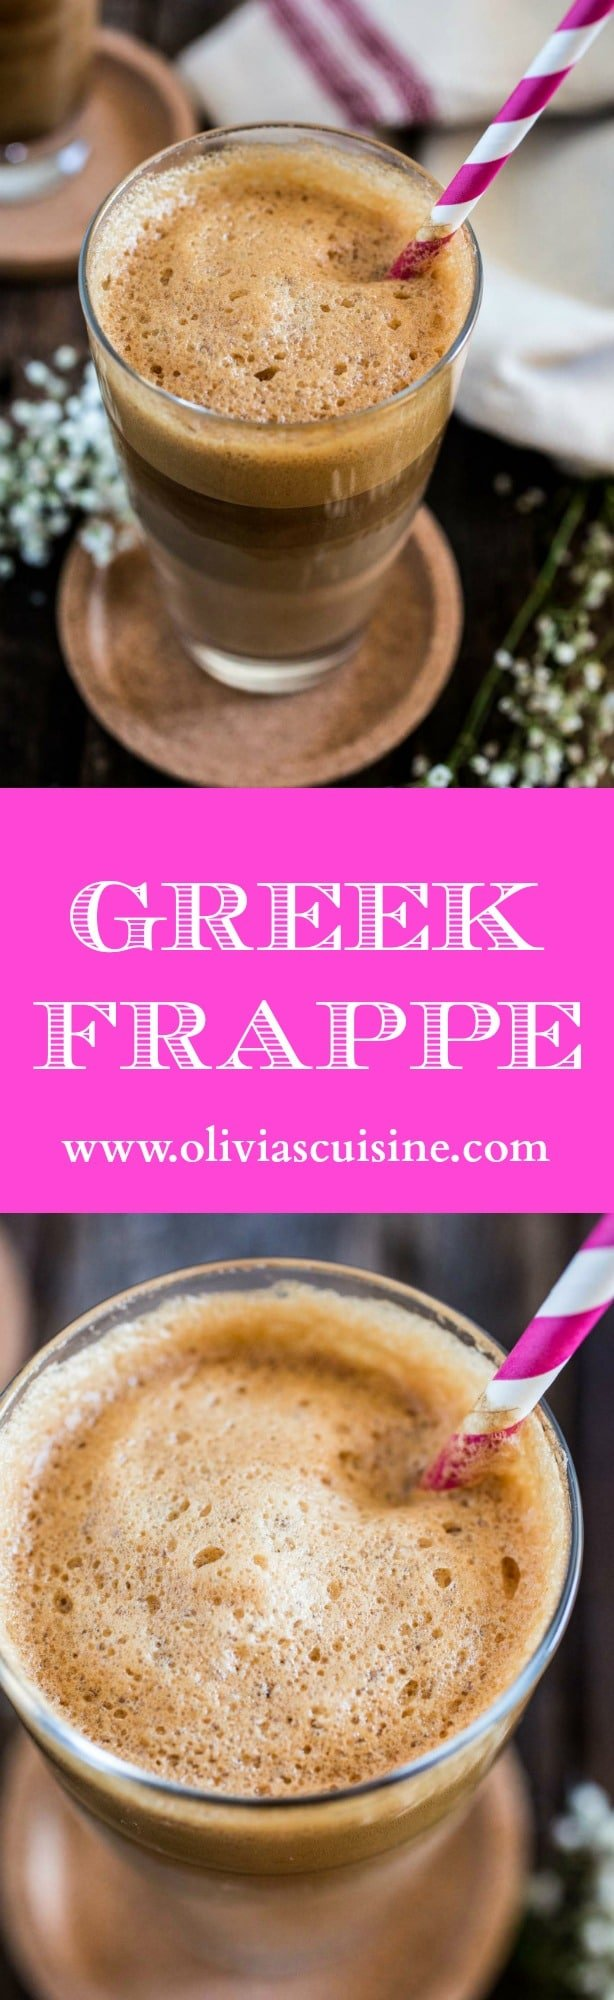 Greek Frappe   www.oliviascuisine.com   The hallmark of outdoor Greek coffee culture, the Frappe is a great caffeinated call for those hot summer days! ☀️ (In partnership with NESCAFÉ Clásico.)